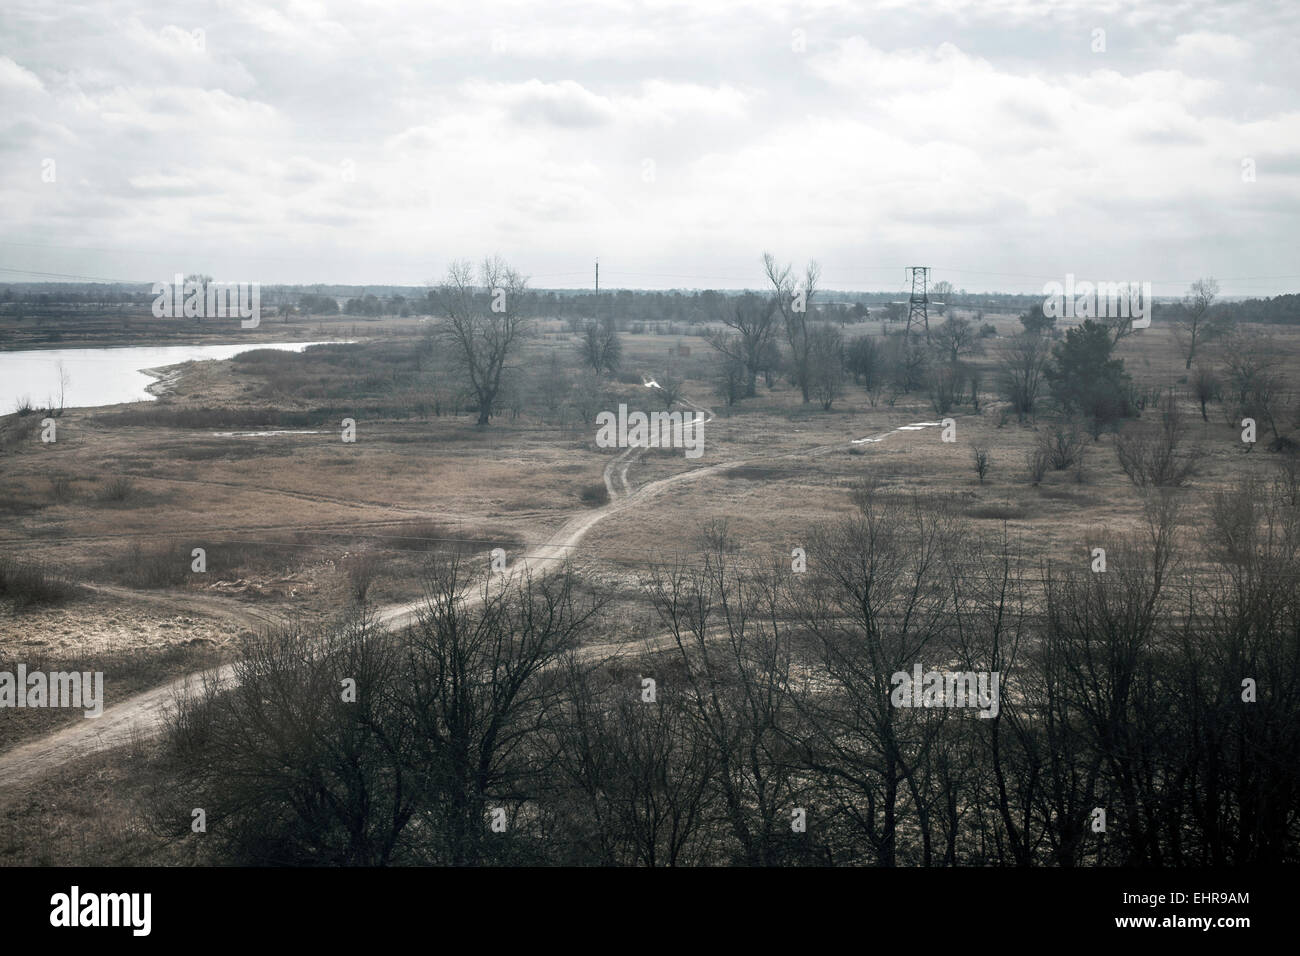 View of a contaminated area from a train that takes the workers of Slavutych to Chernobyl through a stretch of Belarussian - Stock Image